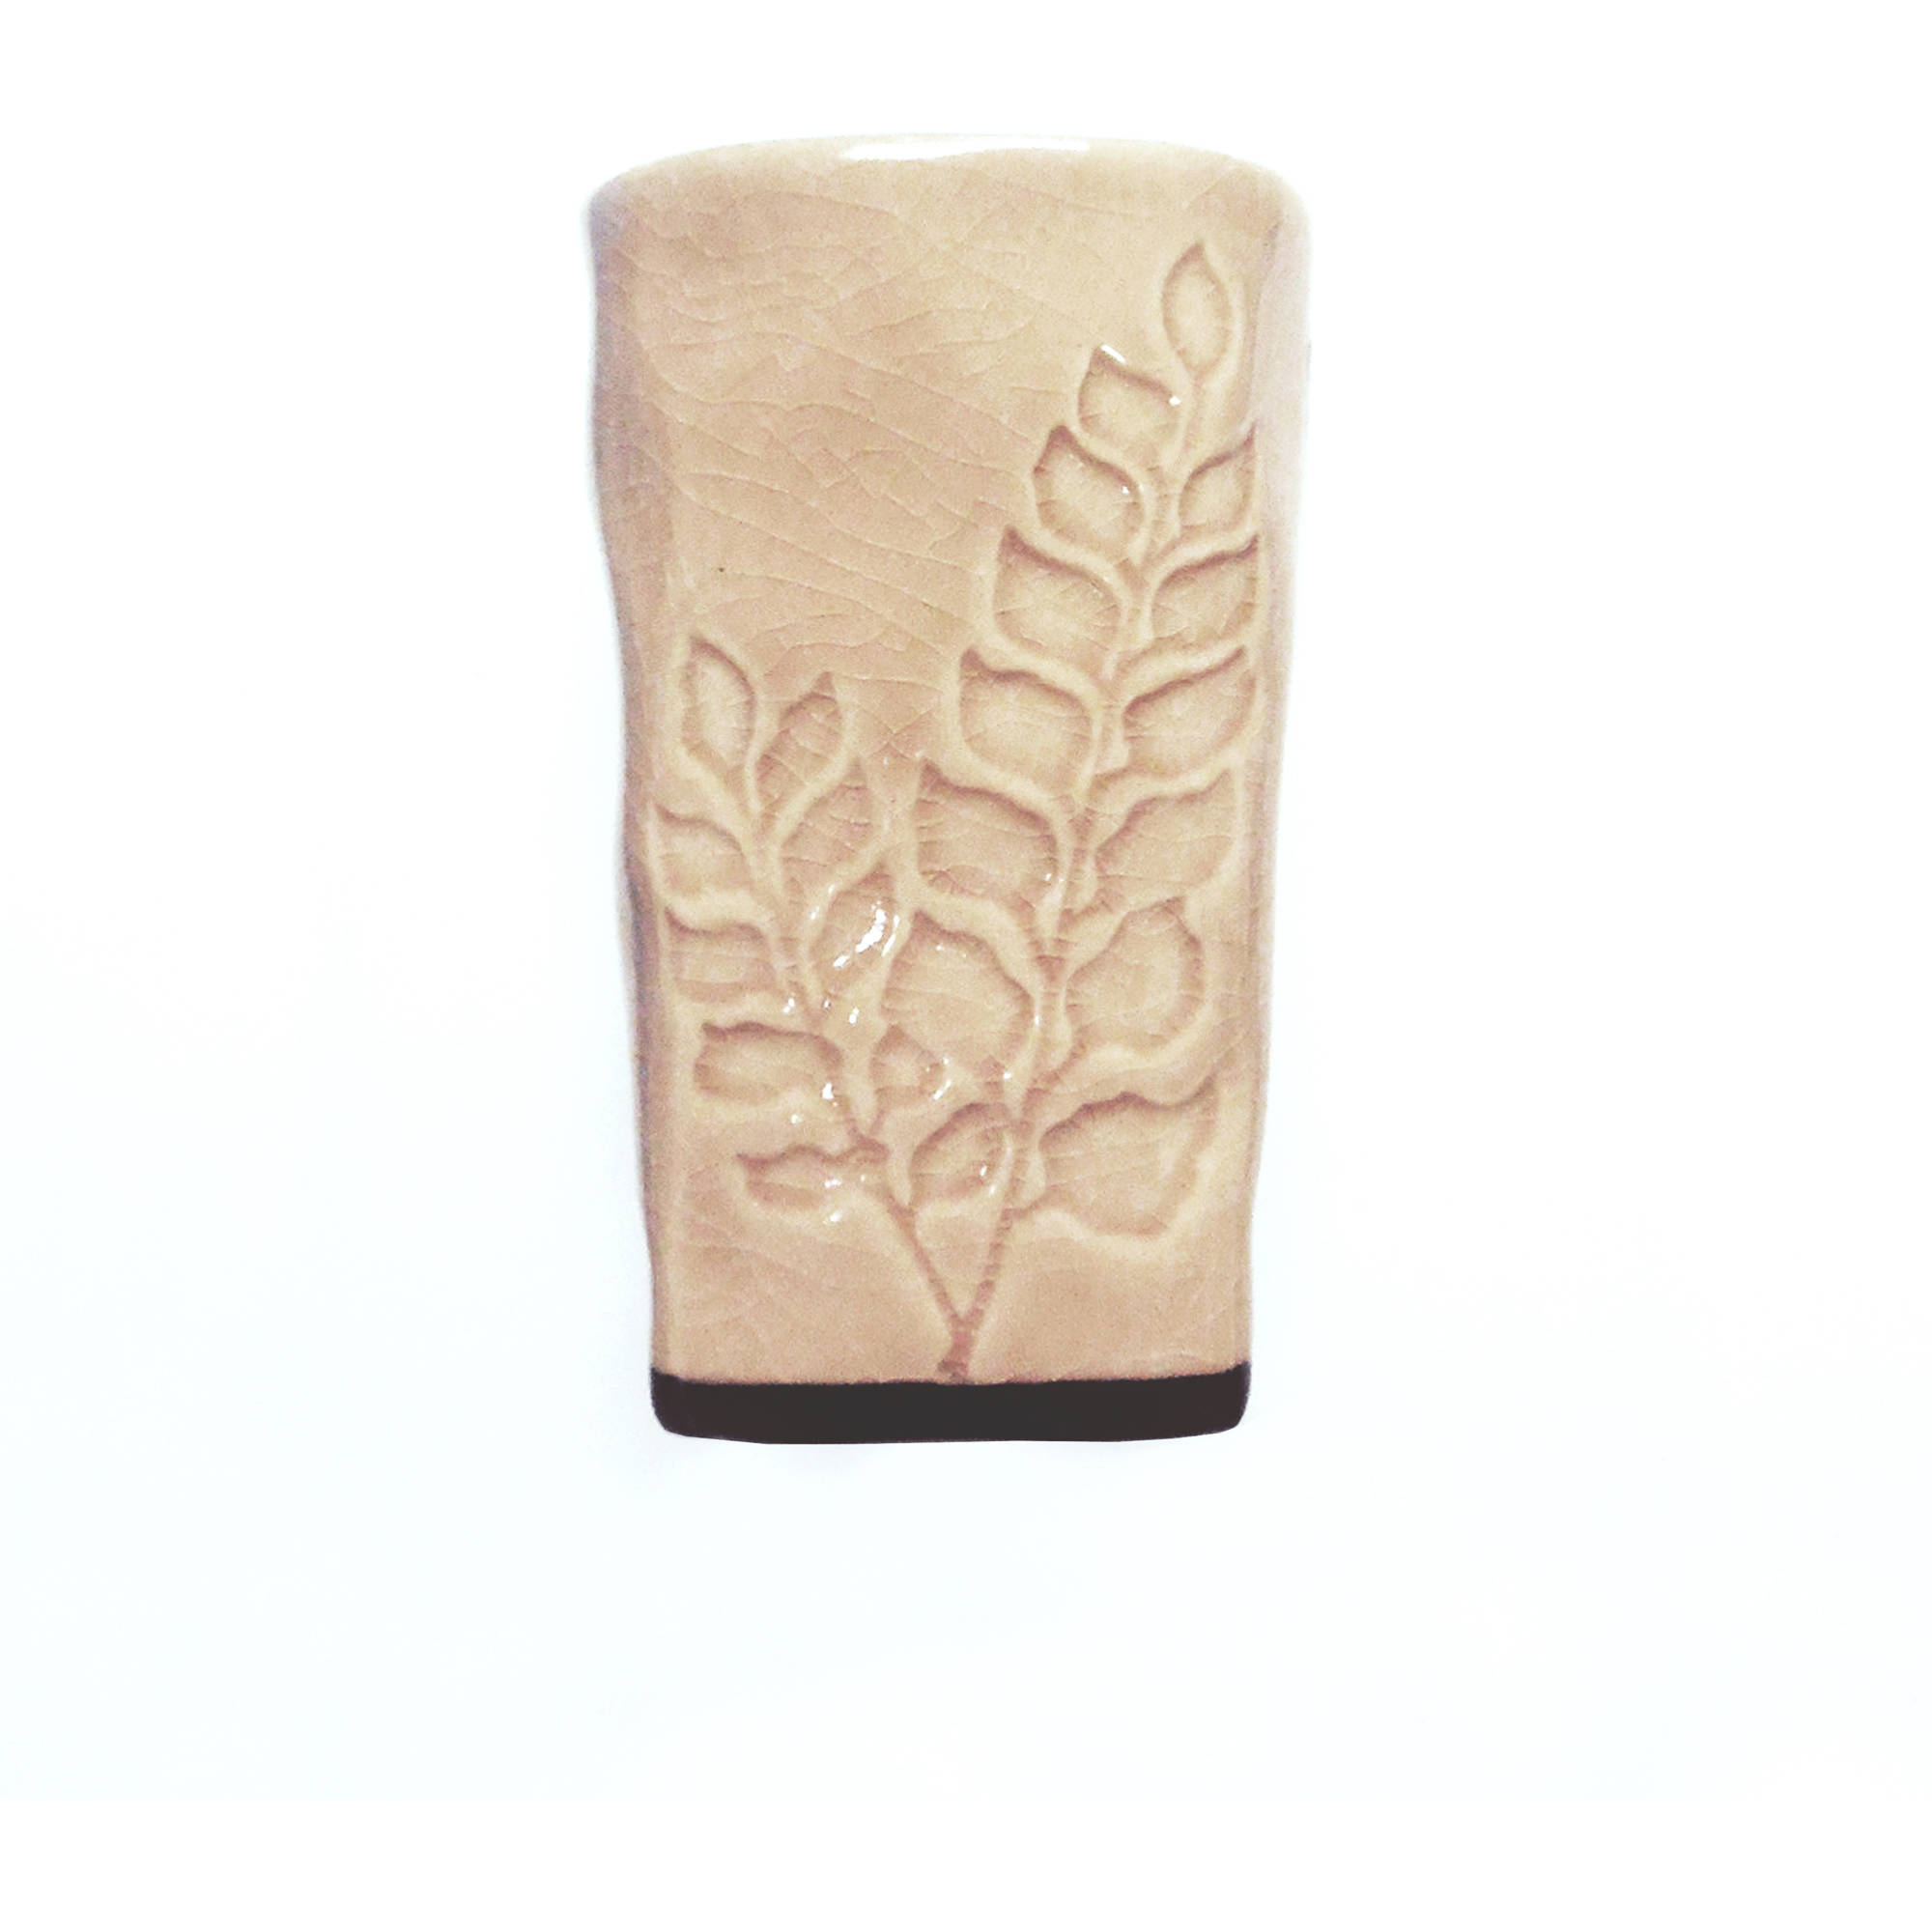 Excell Home Fashions Fern Grove Ceramic